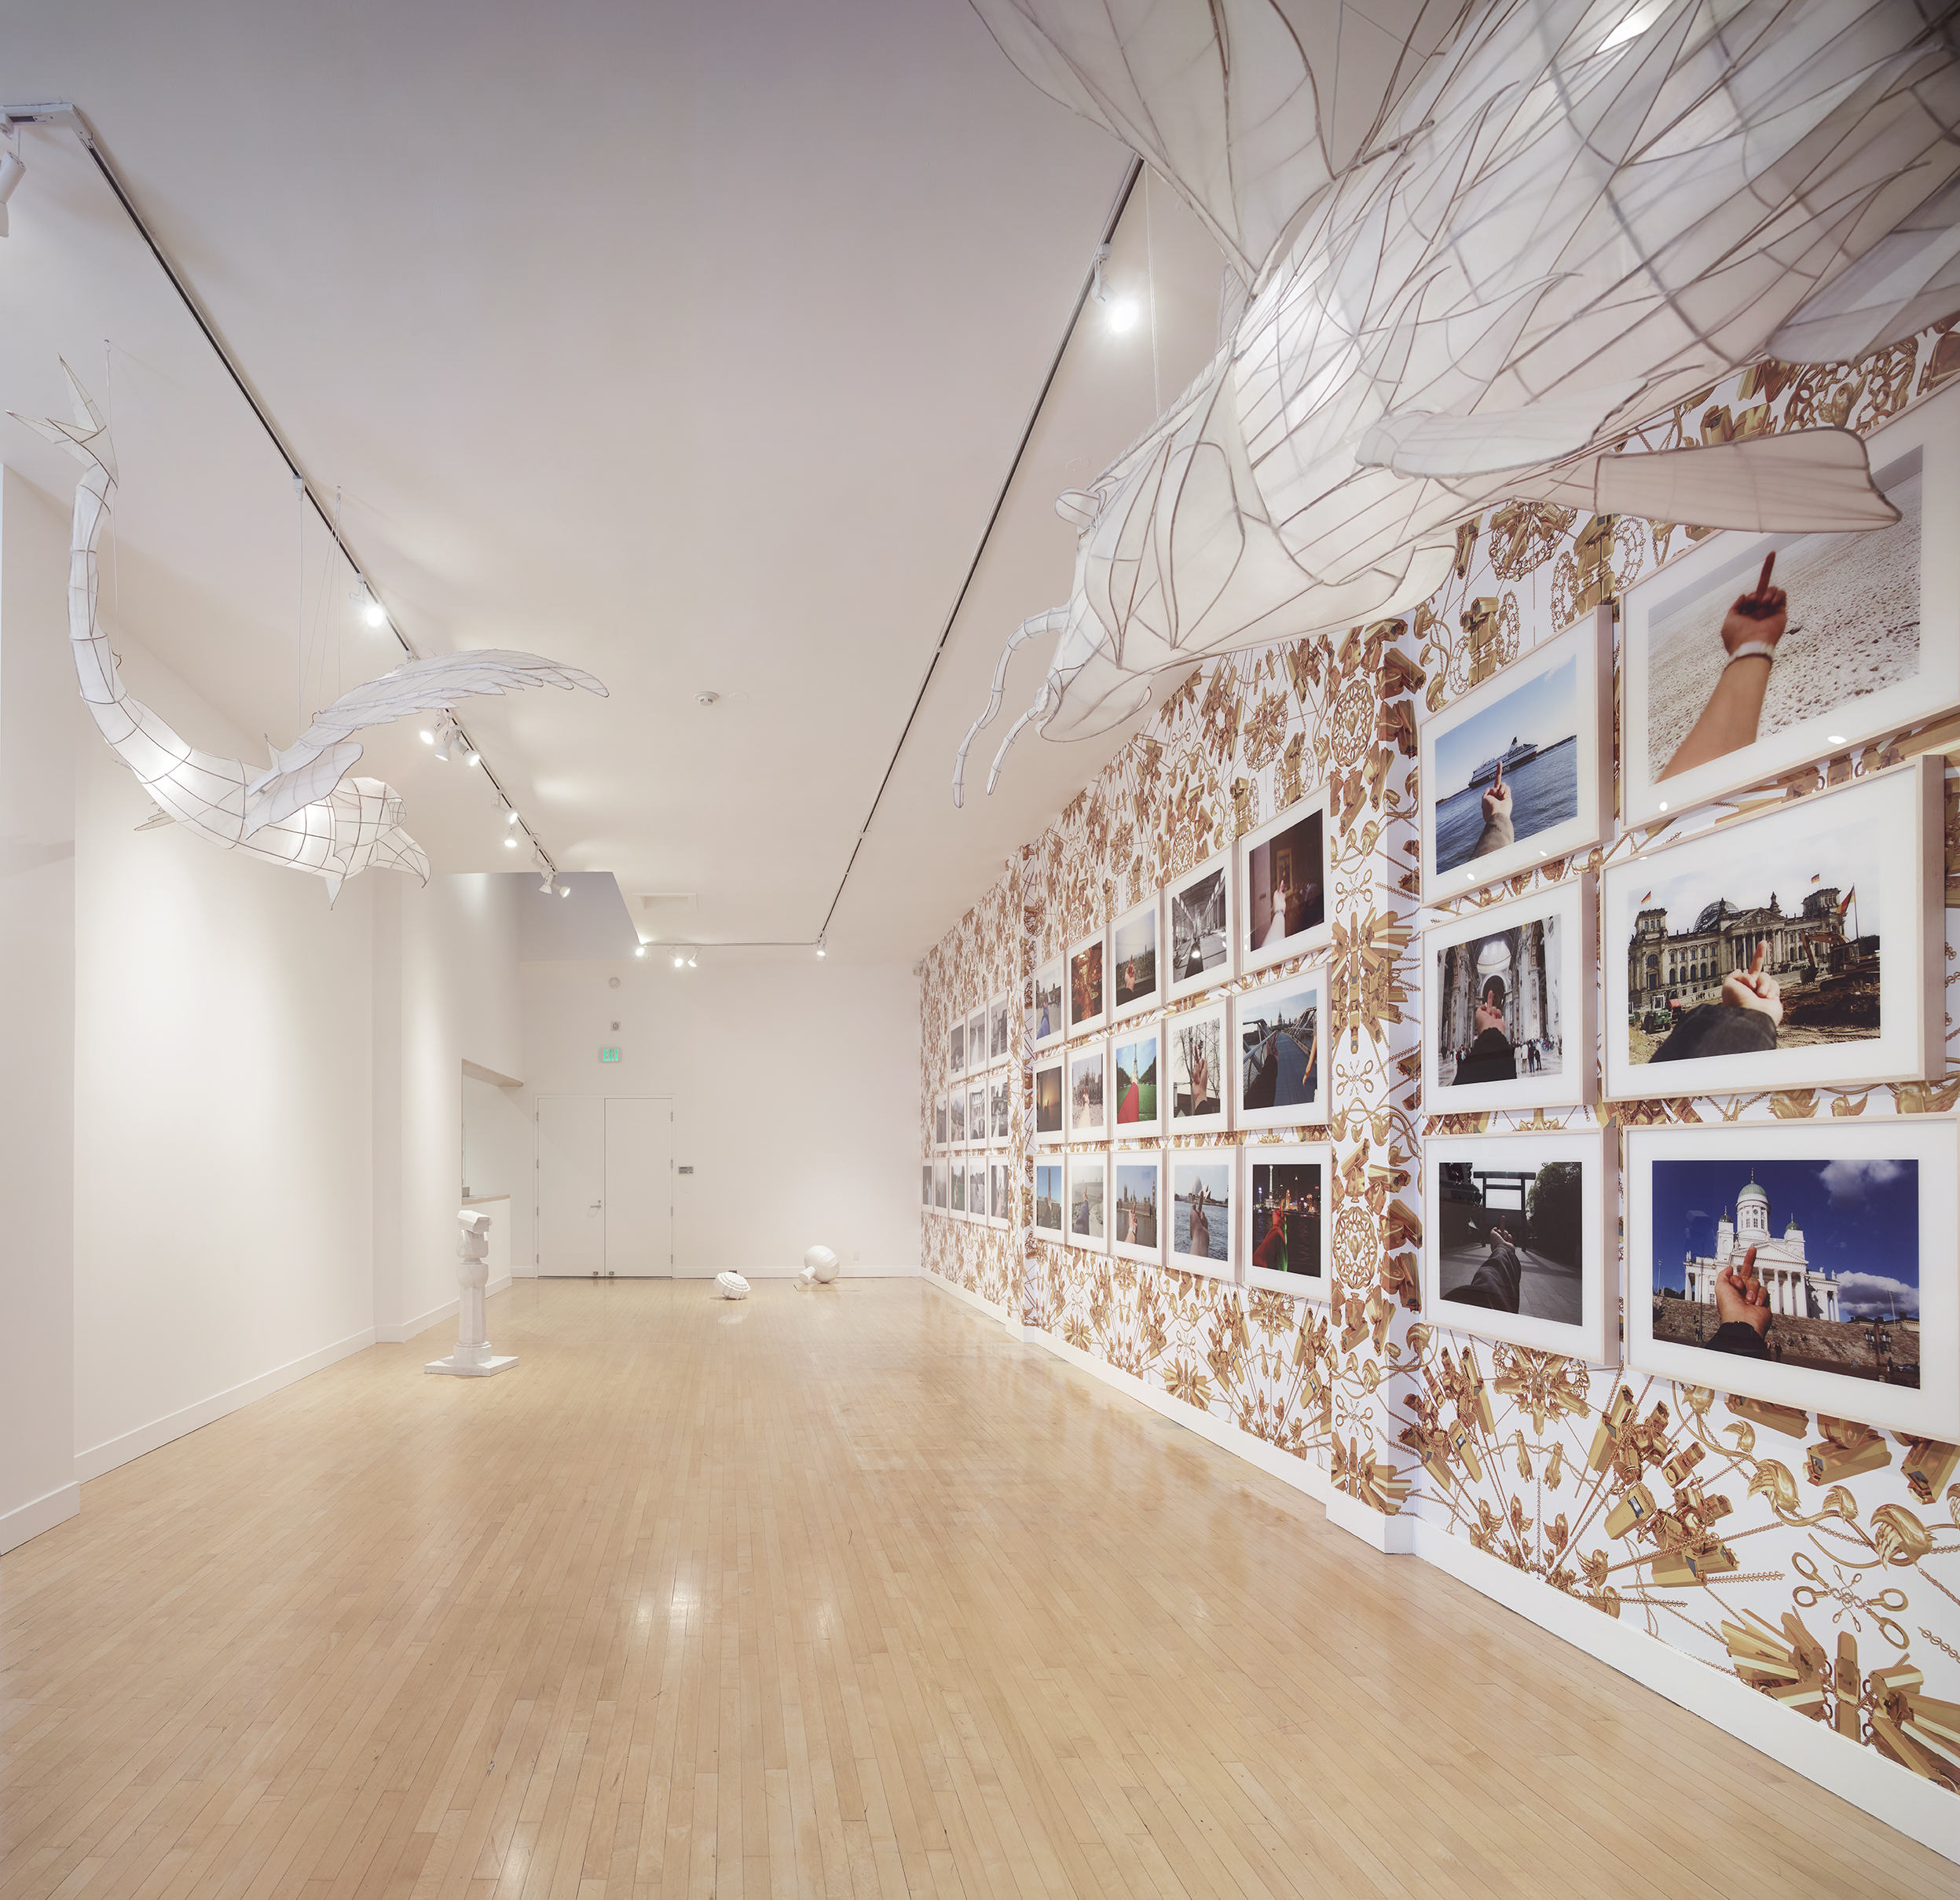 160508_HainesGallery_AiWeiWei_Overrated_RDH_114.jpg